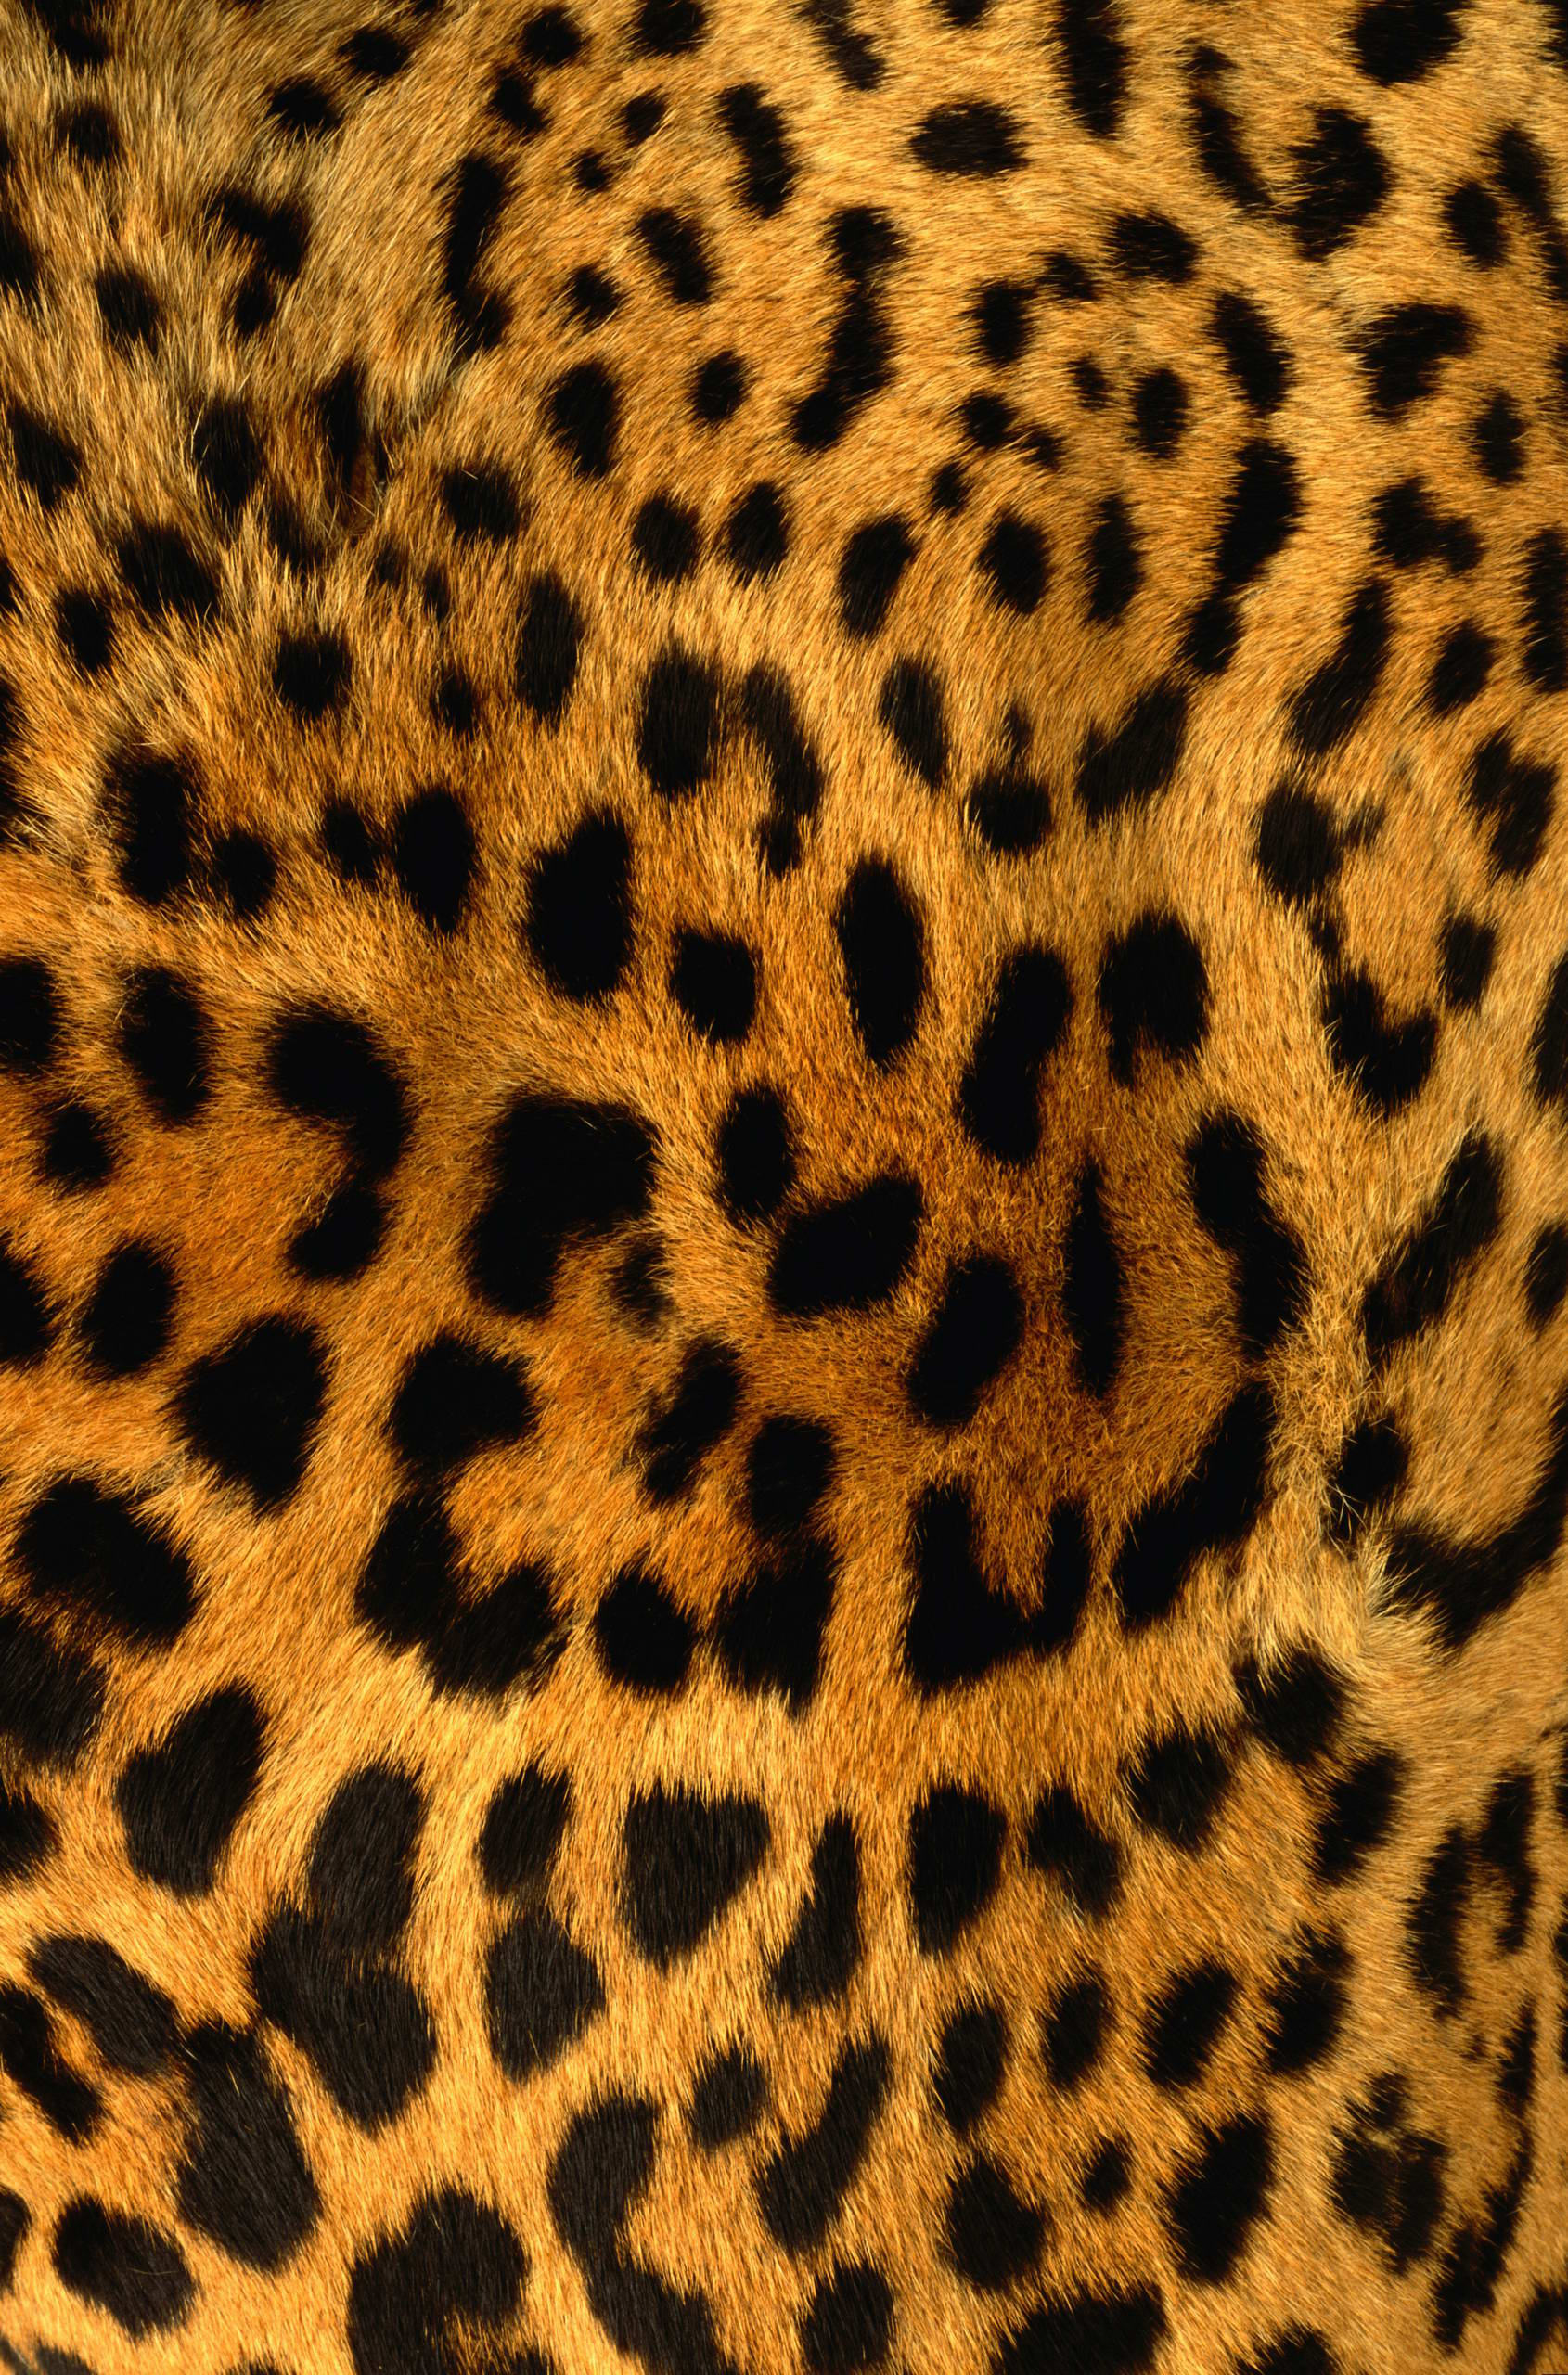 , leopard, skin, texture fur, leopard fur texture background, background